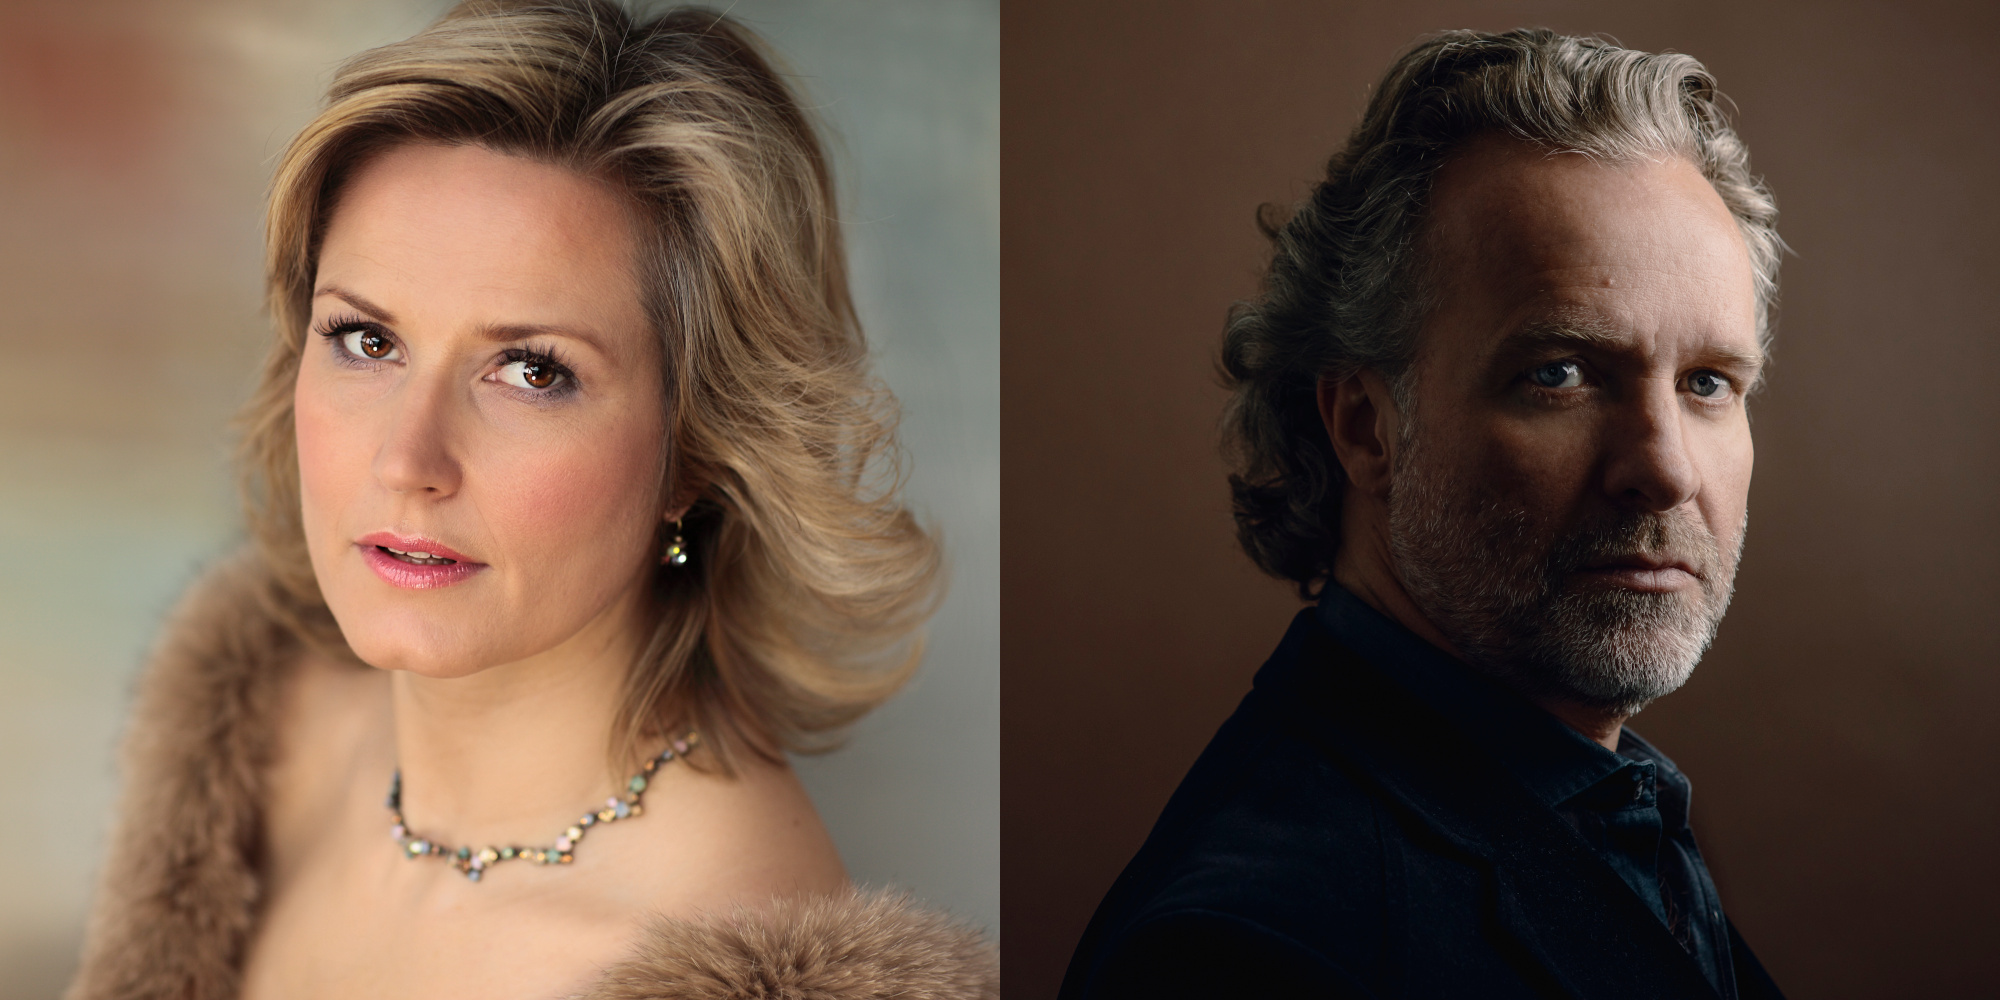 Camilla Nylund and Martin Muehle will give their debuts in Puccini's Tosca